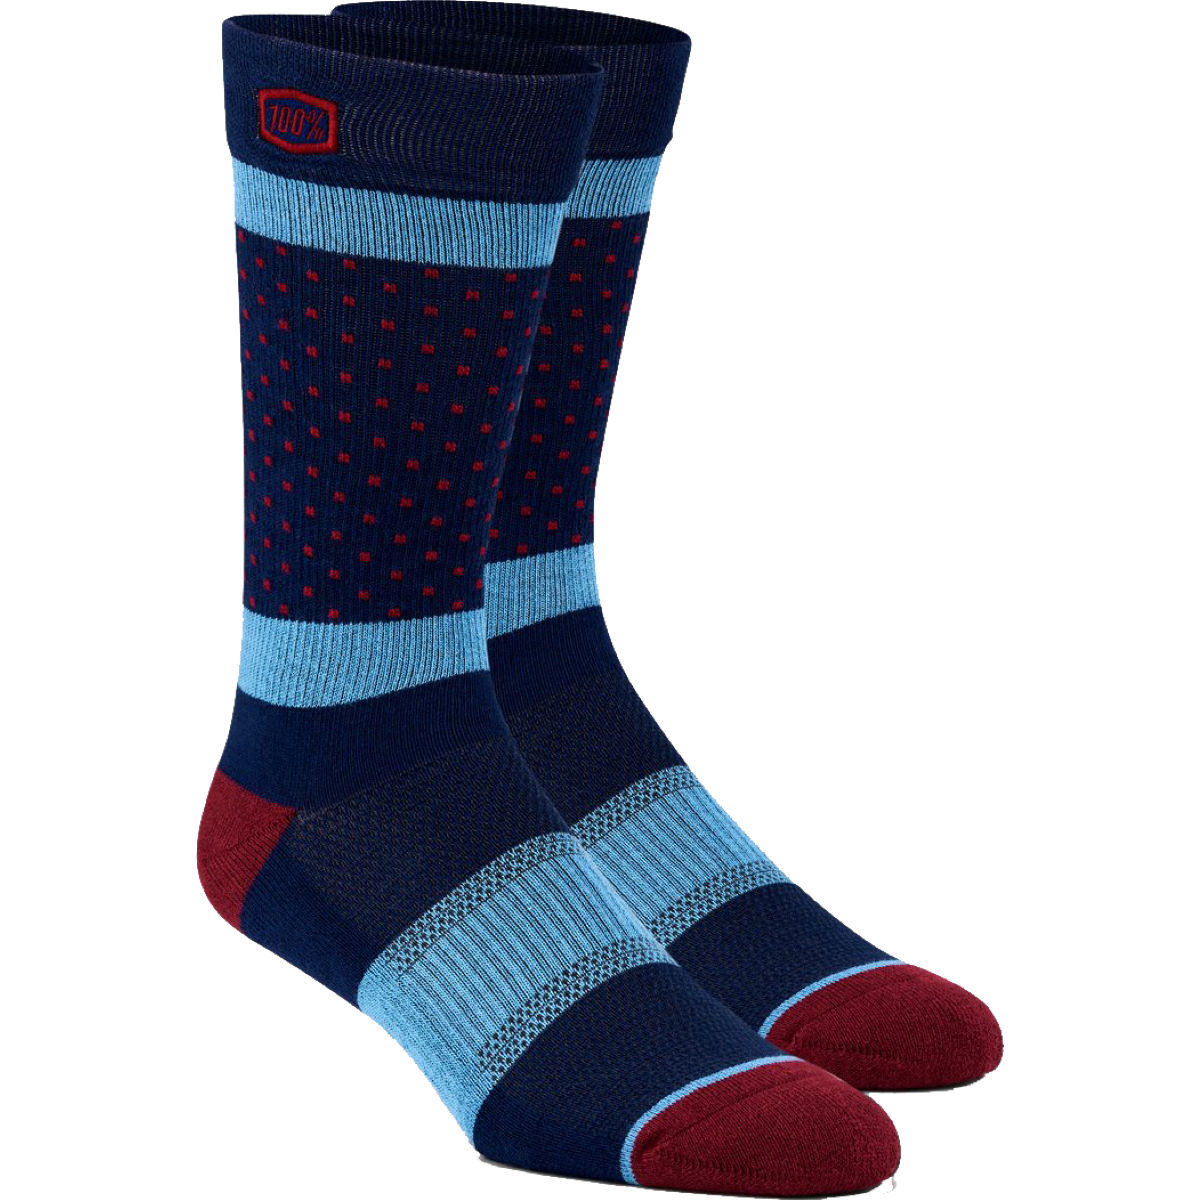 100% Opposition Casual Socks - S/m Navy  Socks